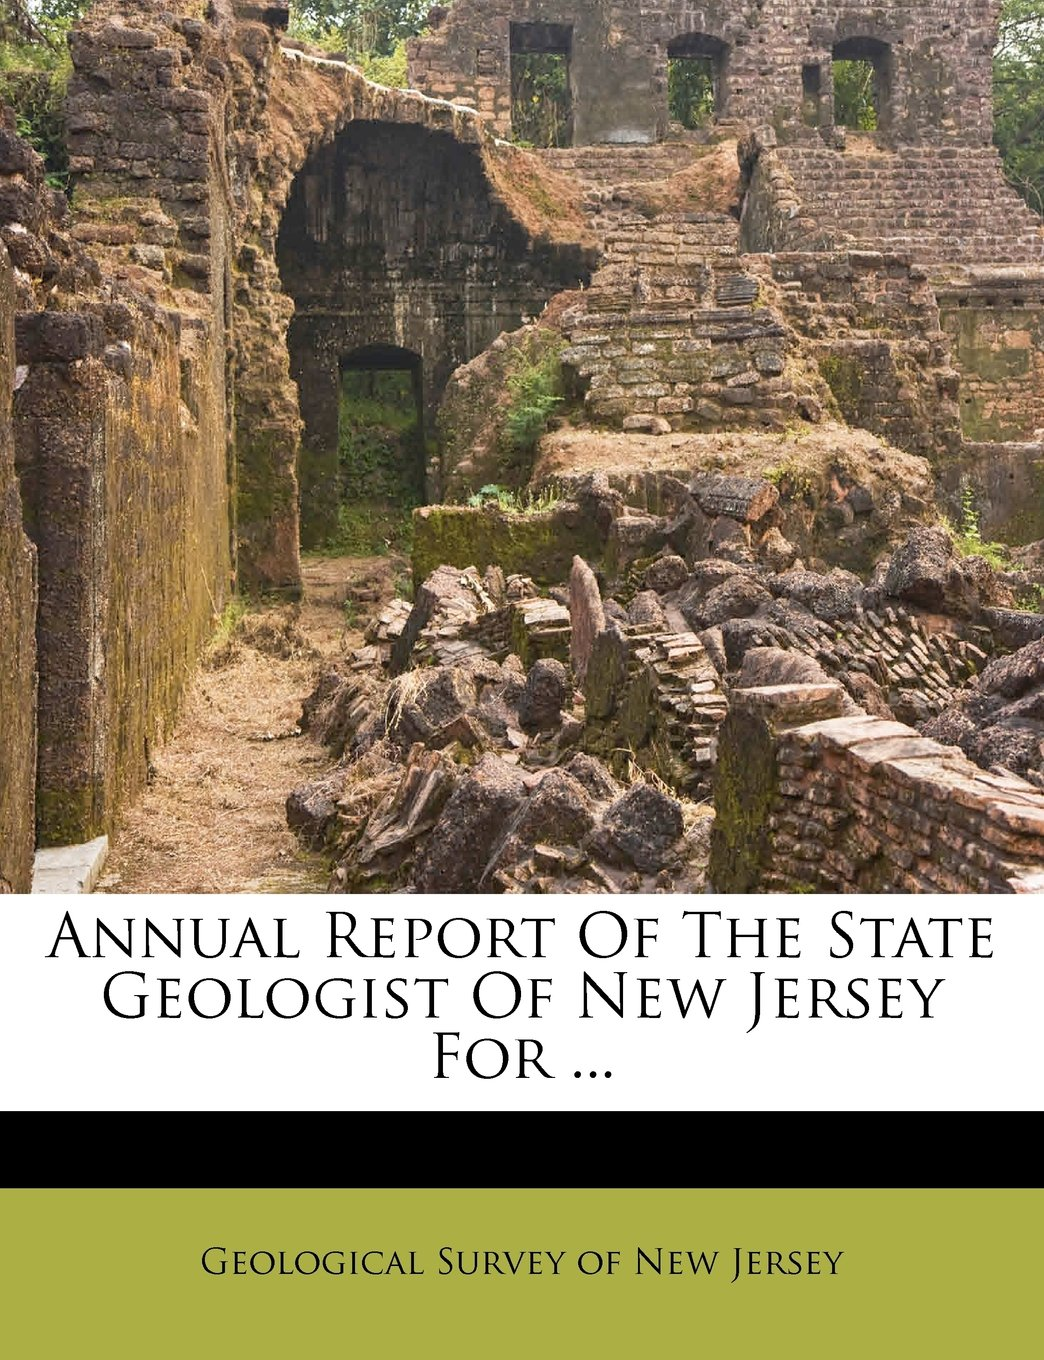 Annual Report Of The State Geologist Of New Jersey For ... pdf